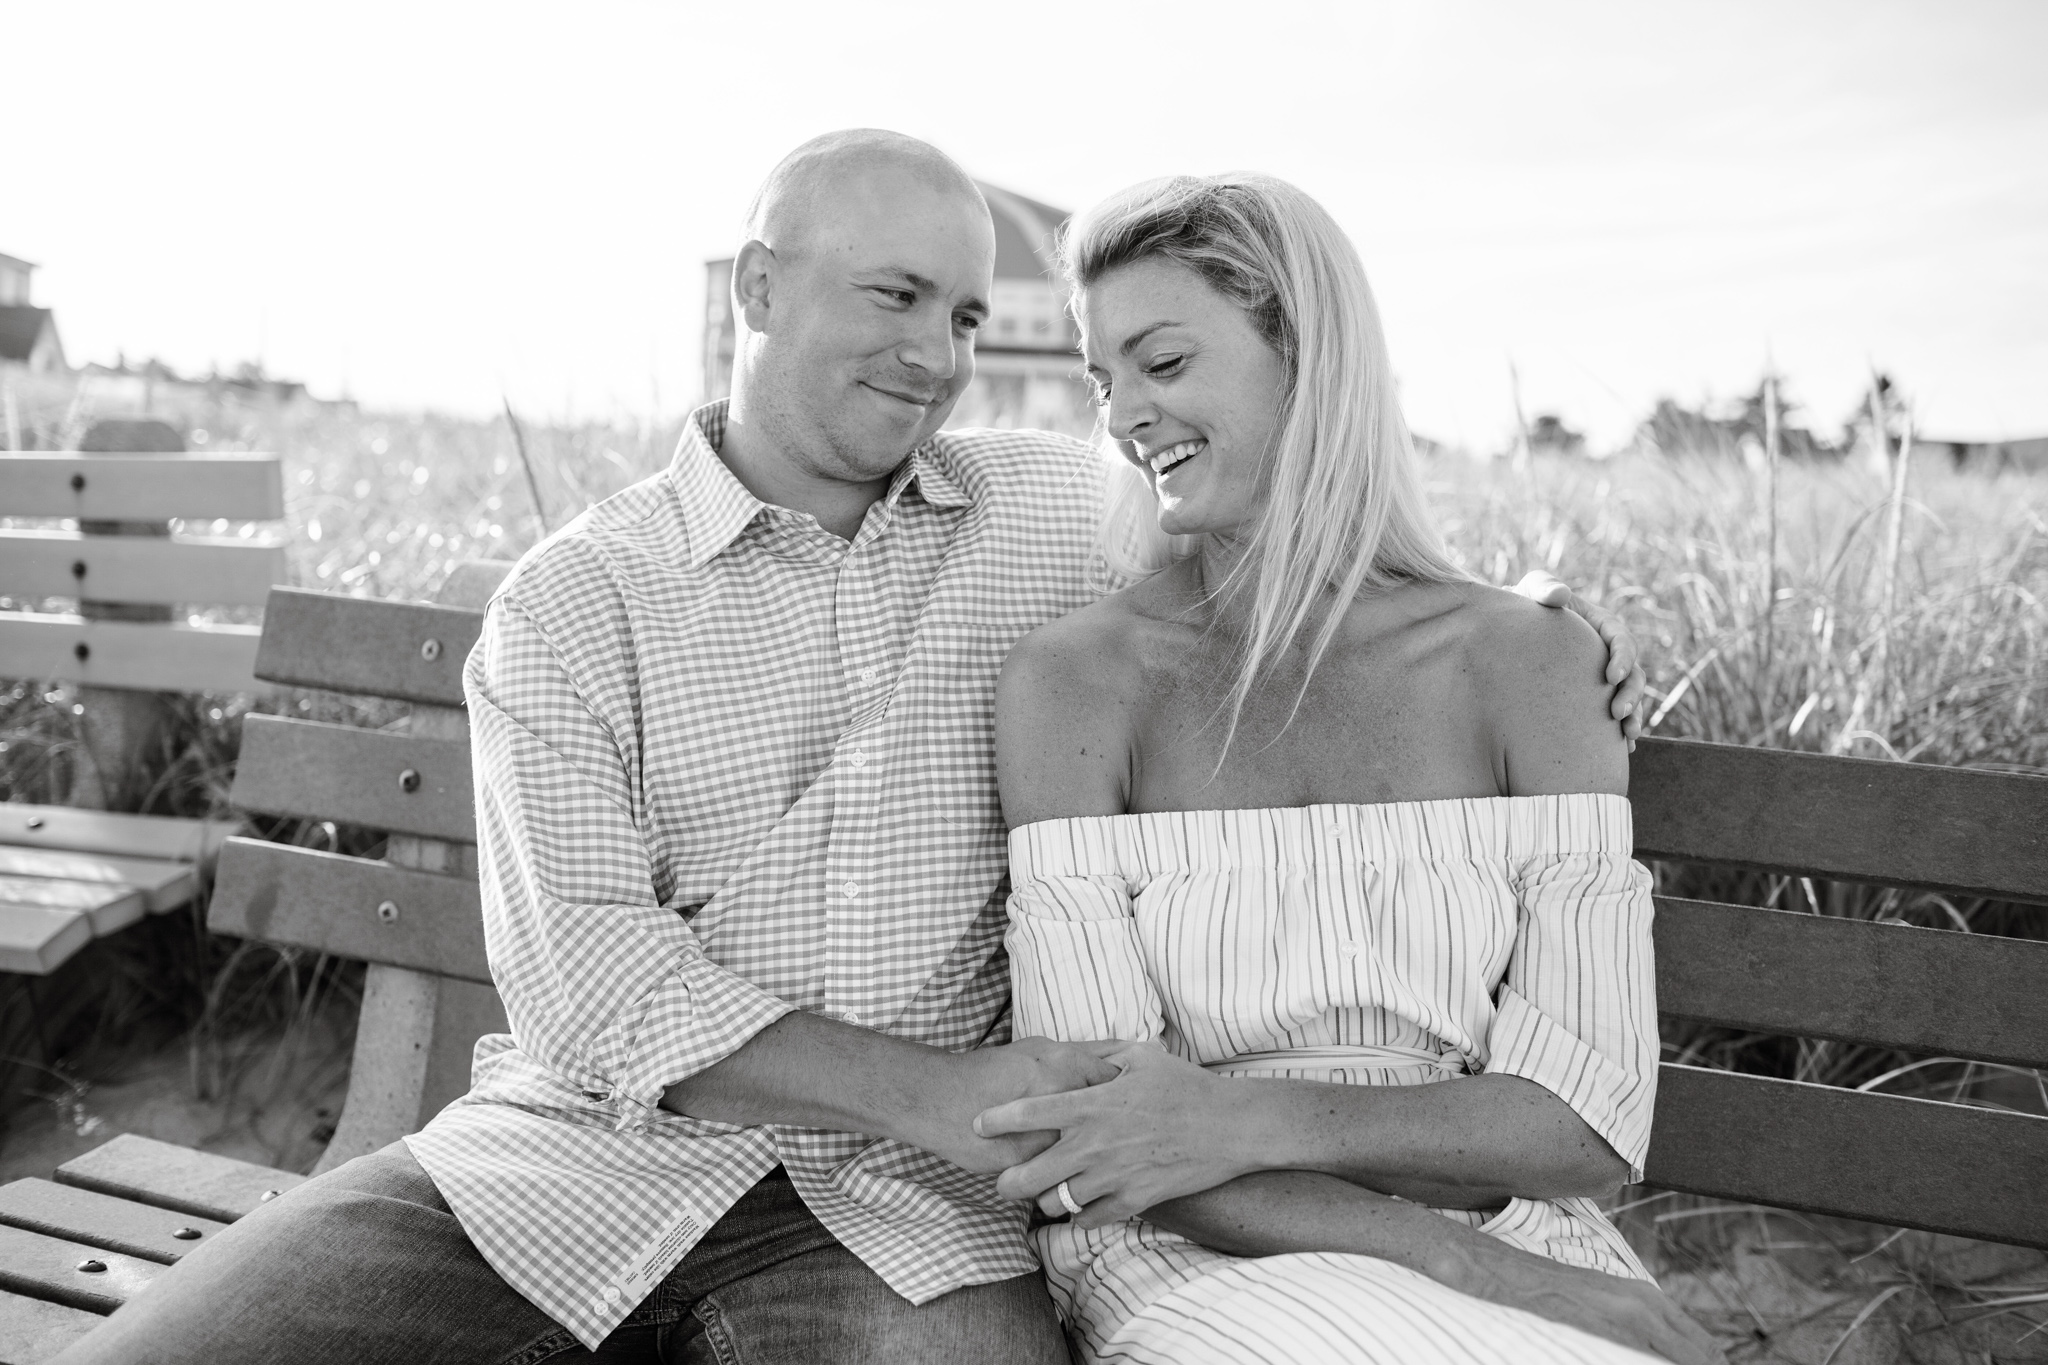 maine-beach-engagement-session-stepheneycollinsphotography-18.jpg